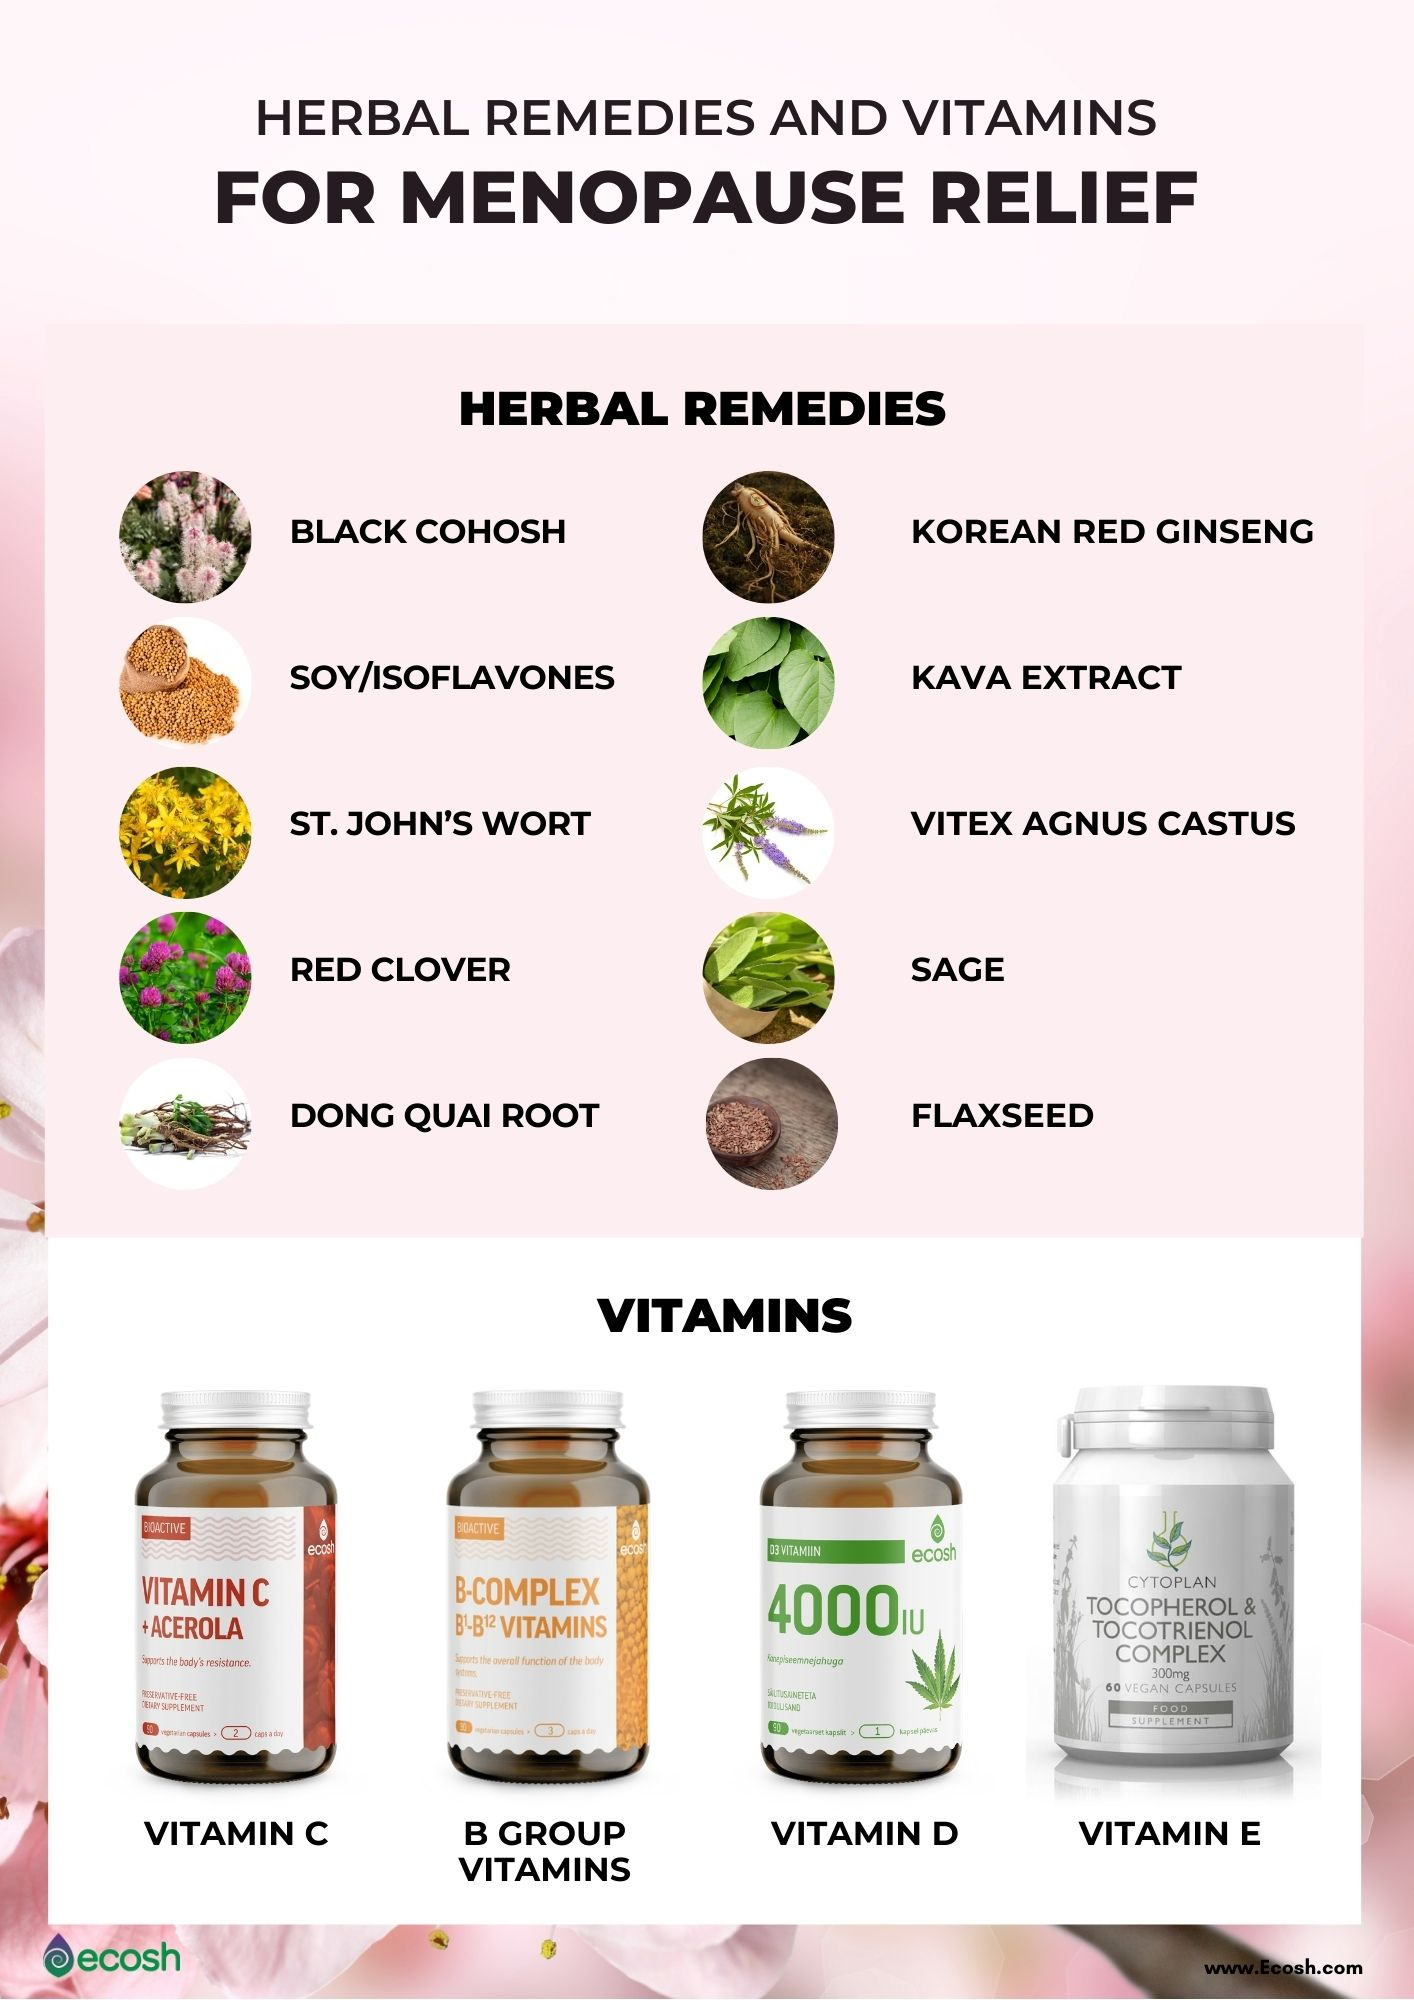 Ecosh_Herbal_Remedies_and_Vitamis_for_Menopause_Relief_Menopause_Treatment_with_Herbal_Remedies_Home_Remedies_for_Menopause_Relief